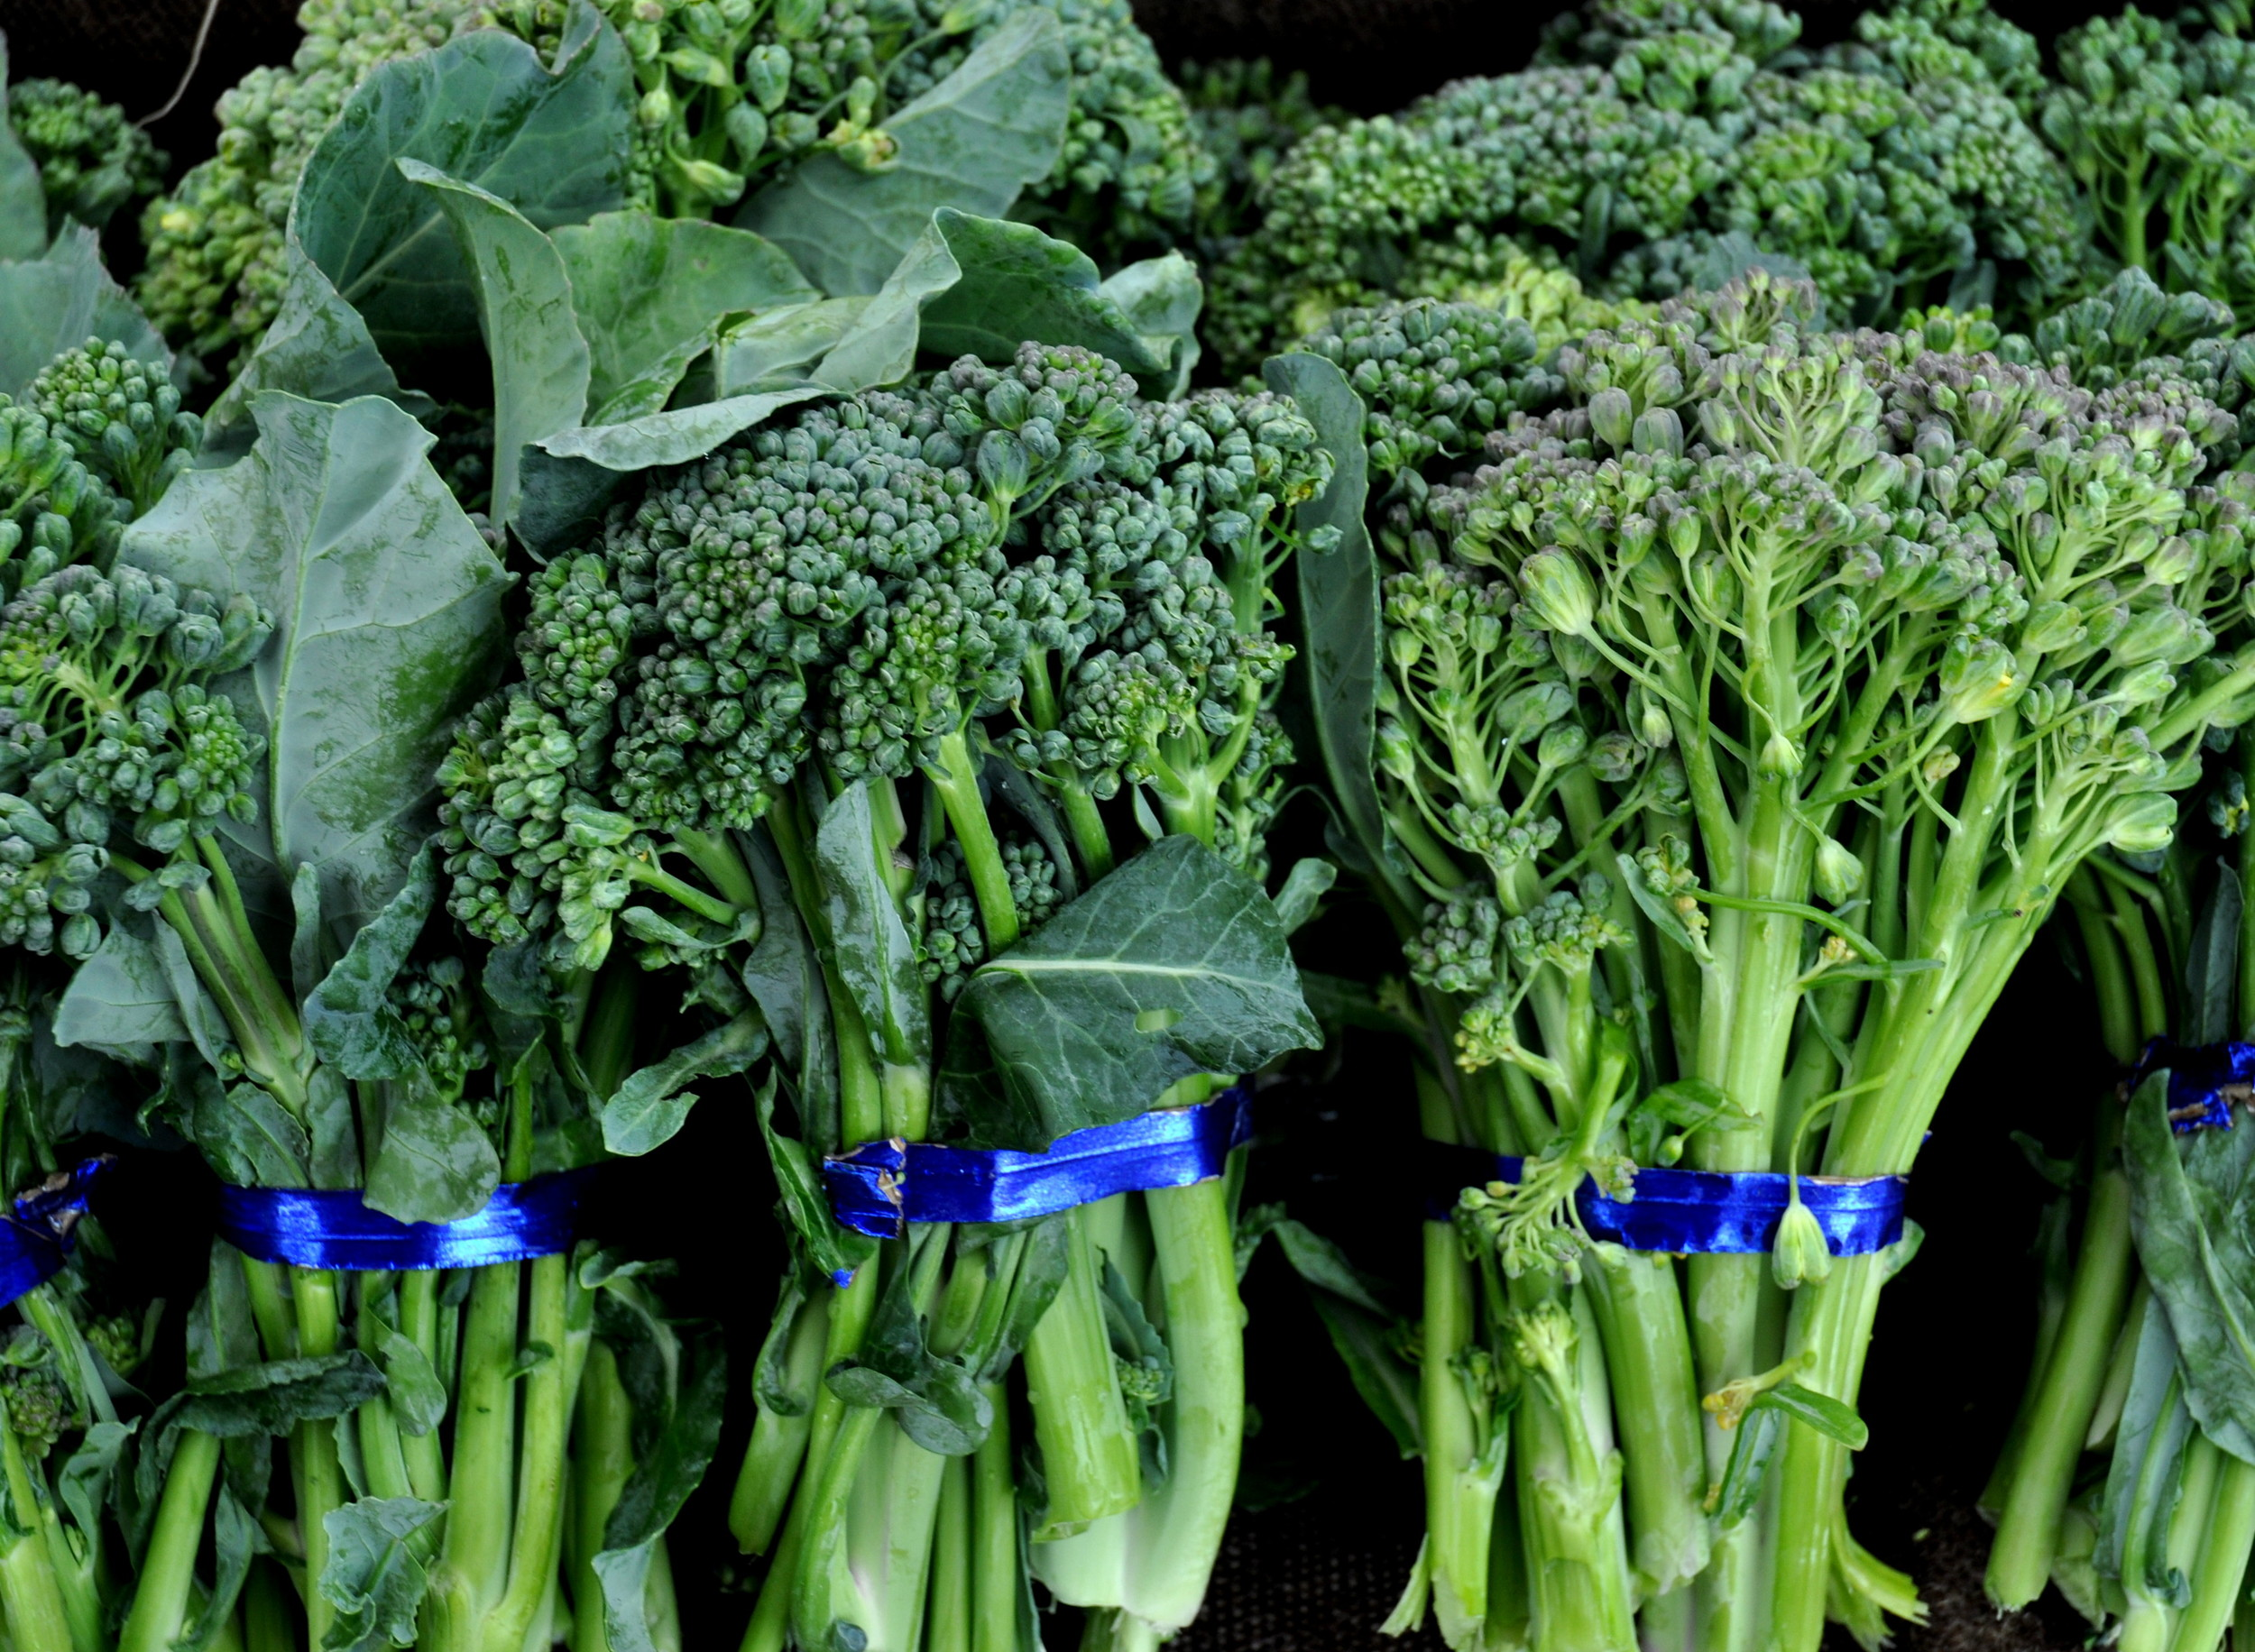 Sprouting broccoli from One Leaf Farm.. Photo copyright 2014 by Zachary D. Lyons.